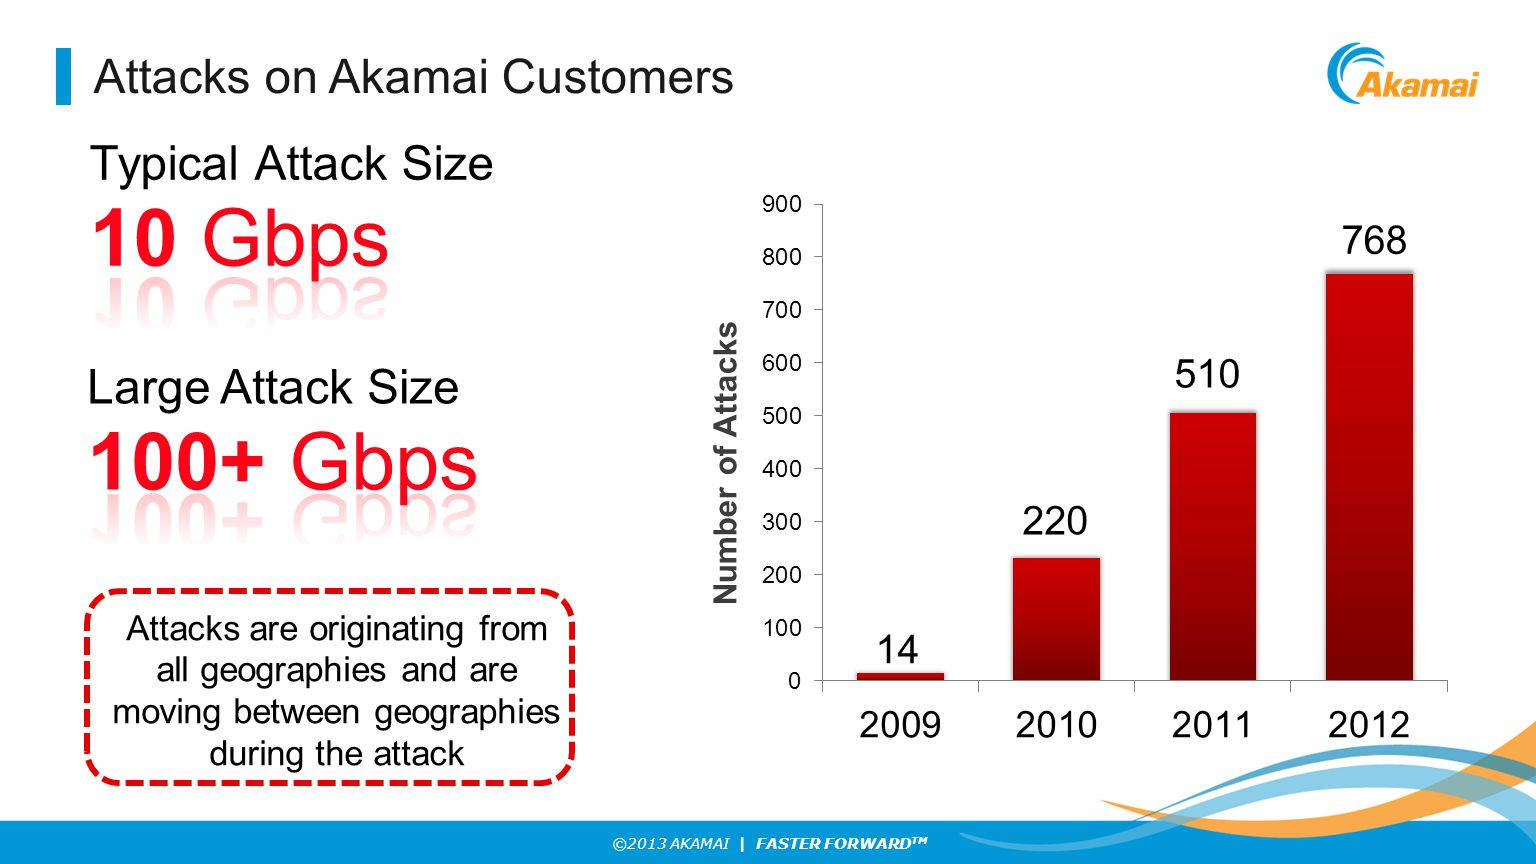 ©2013 AKAMAI | FASTER FORWARD TM Attacks on Akamai Customers Attacks are originating from all geographies and are moving between geographies during the attack 14 220 510